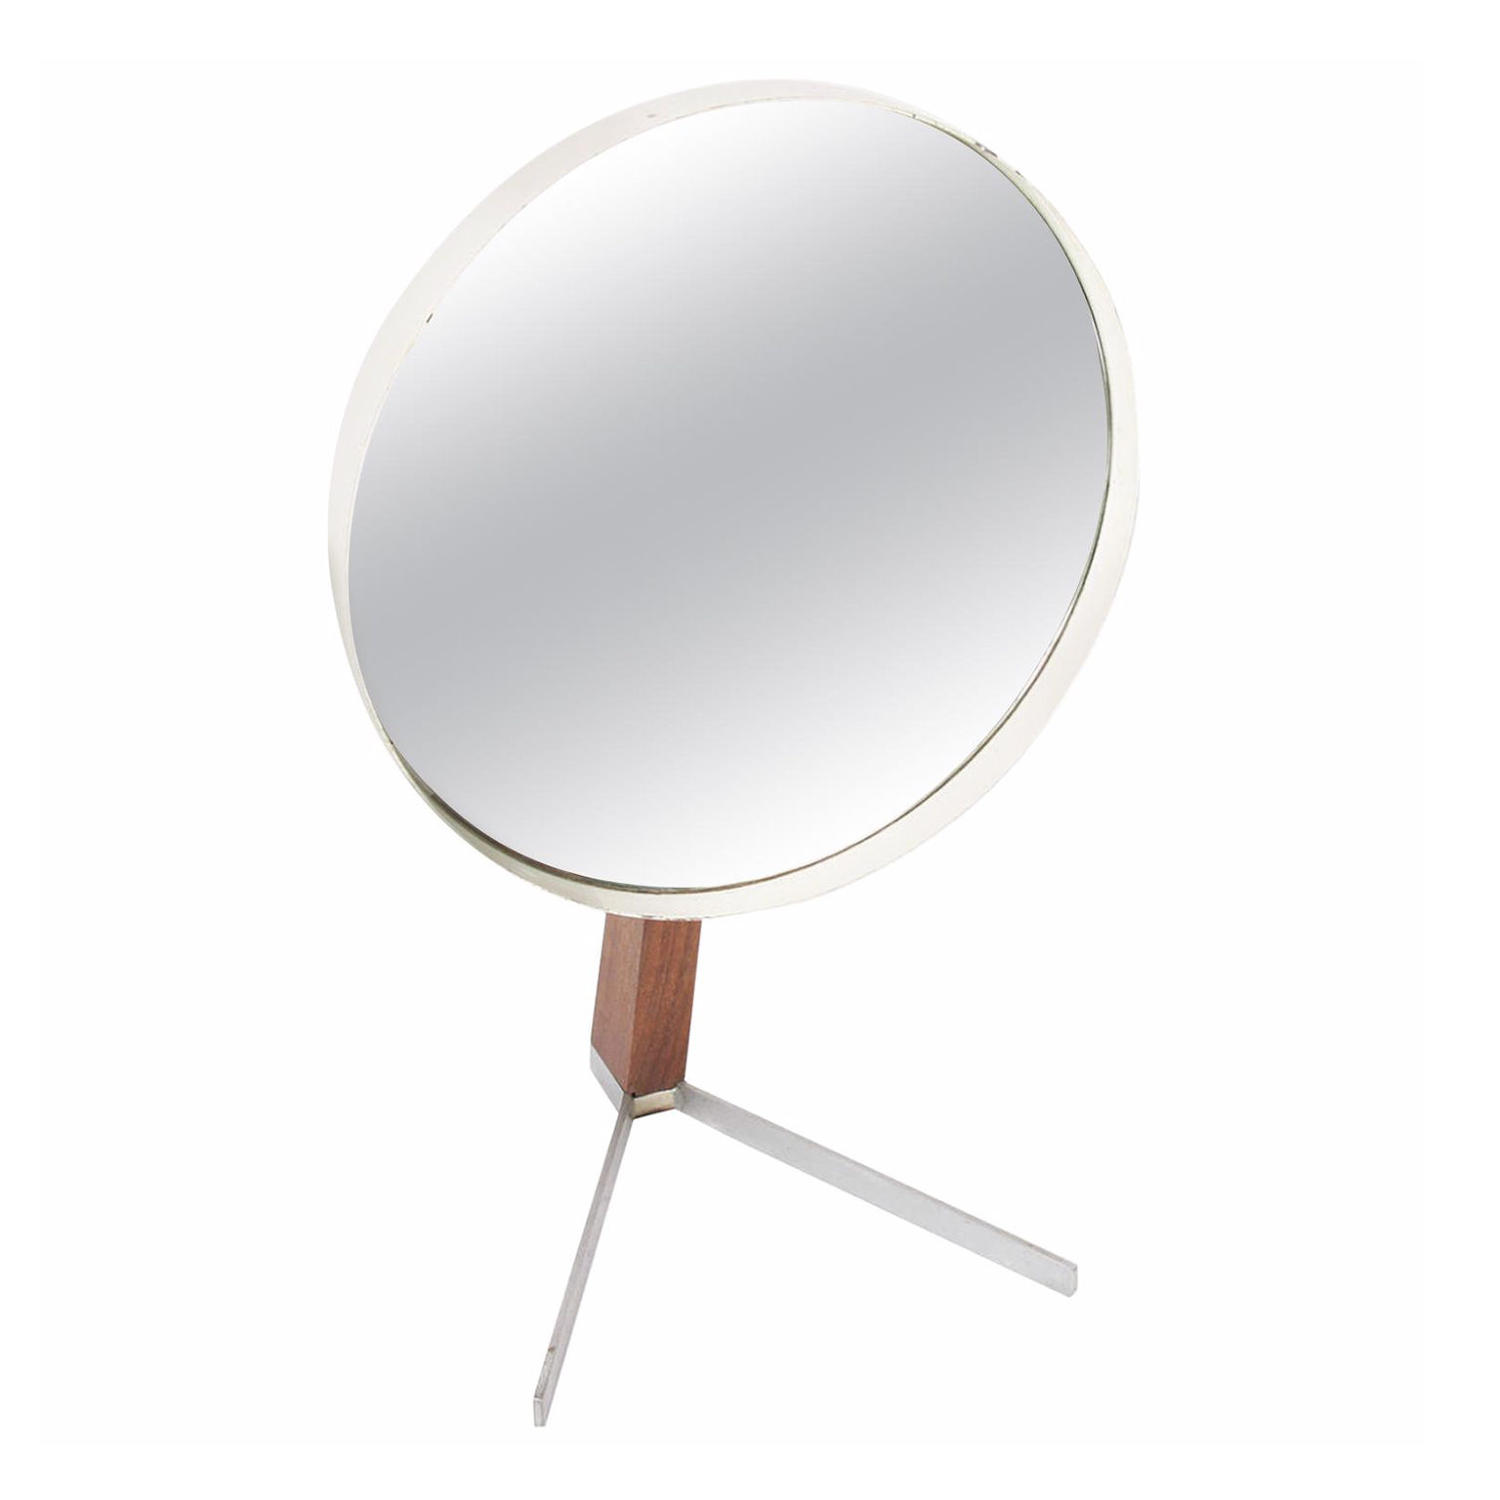 Dressing Table Mirror by Durlston Designs